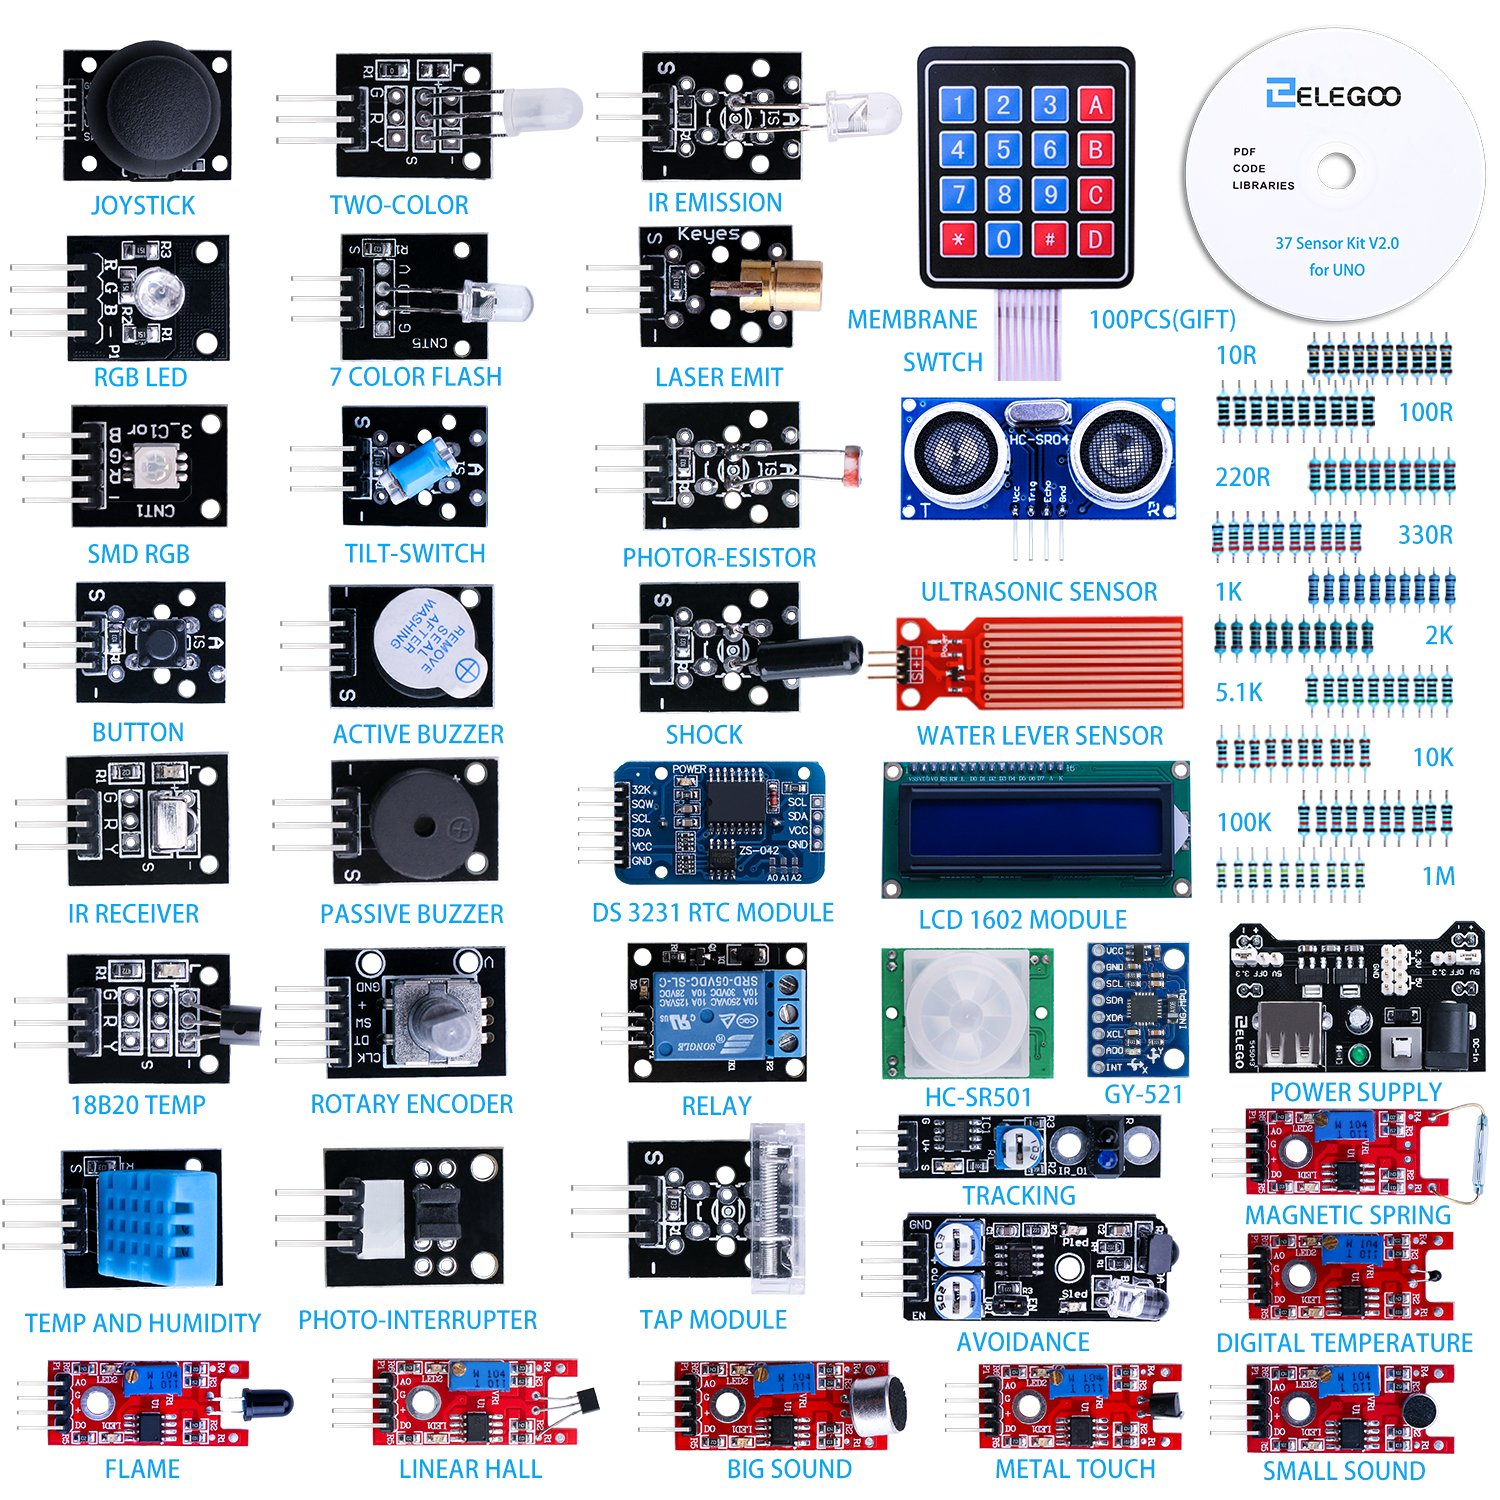 Elegoo Upgraded 37 In 1 Sensor Modules Kit With Tutorial For Arduino Uno R3 Mega 2560 Nano Wiring Diagram Document Remote Vehicle Start Accessory Pdf By Computers Accessories